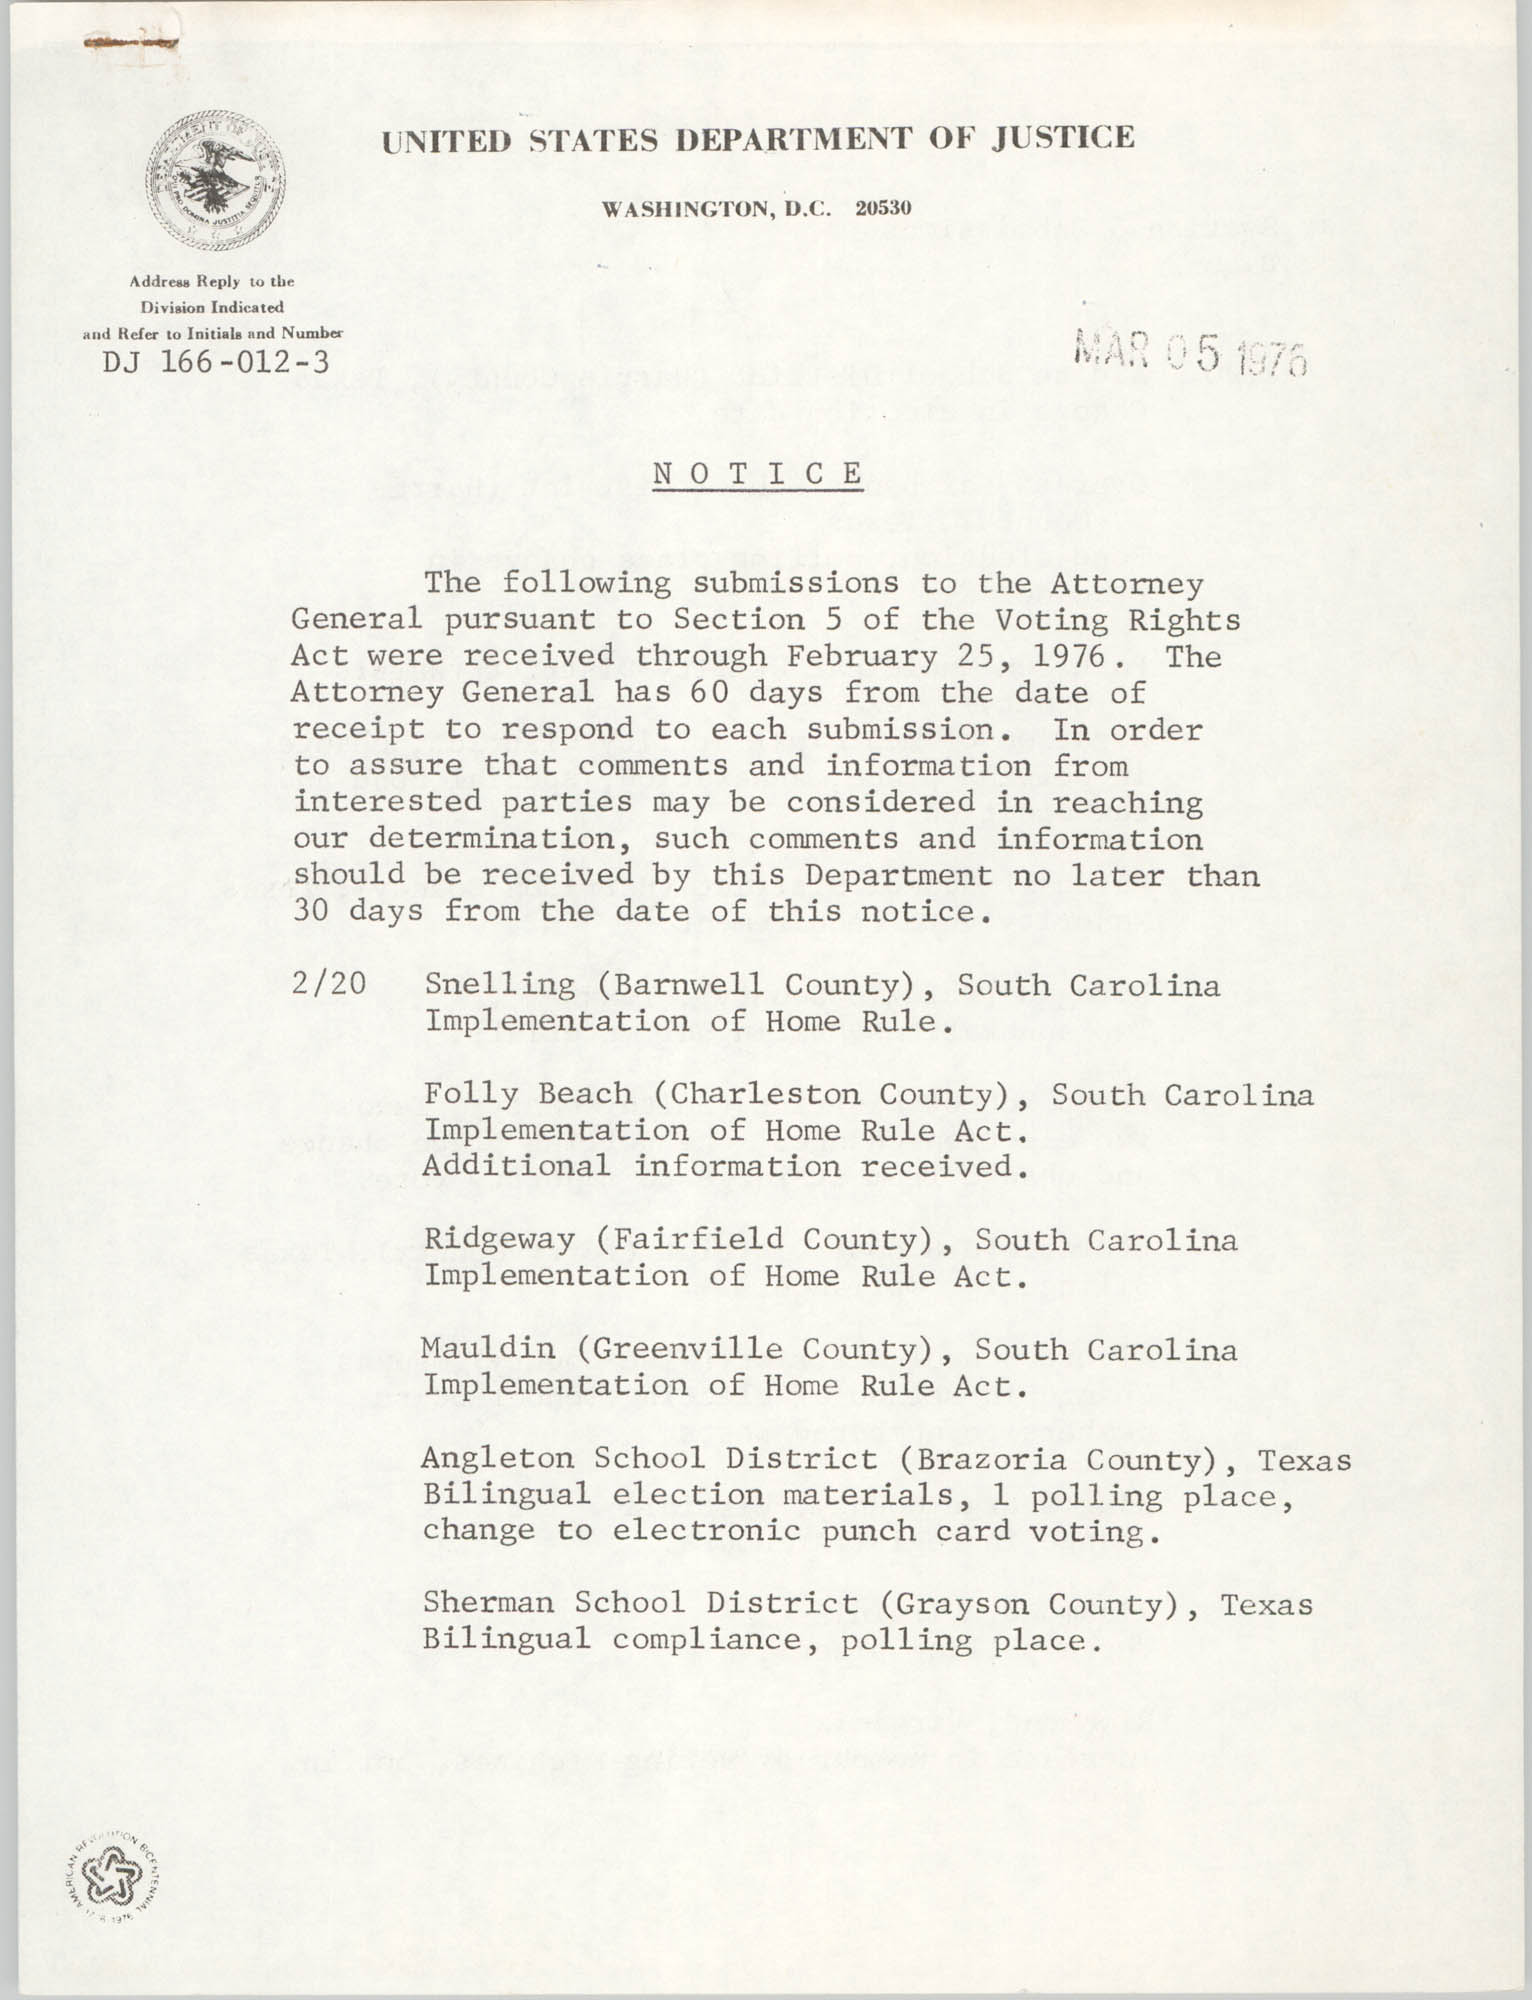 United States Department of Justice Notice, March 5, 1976